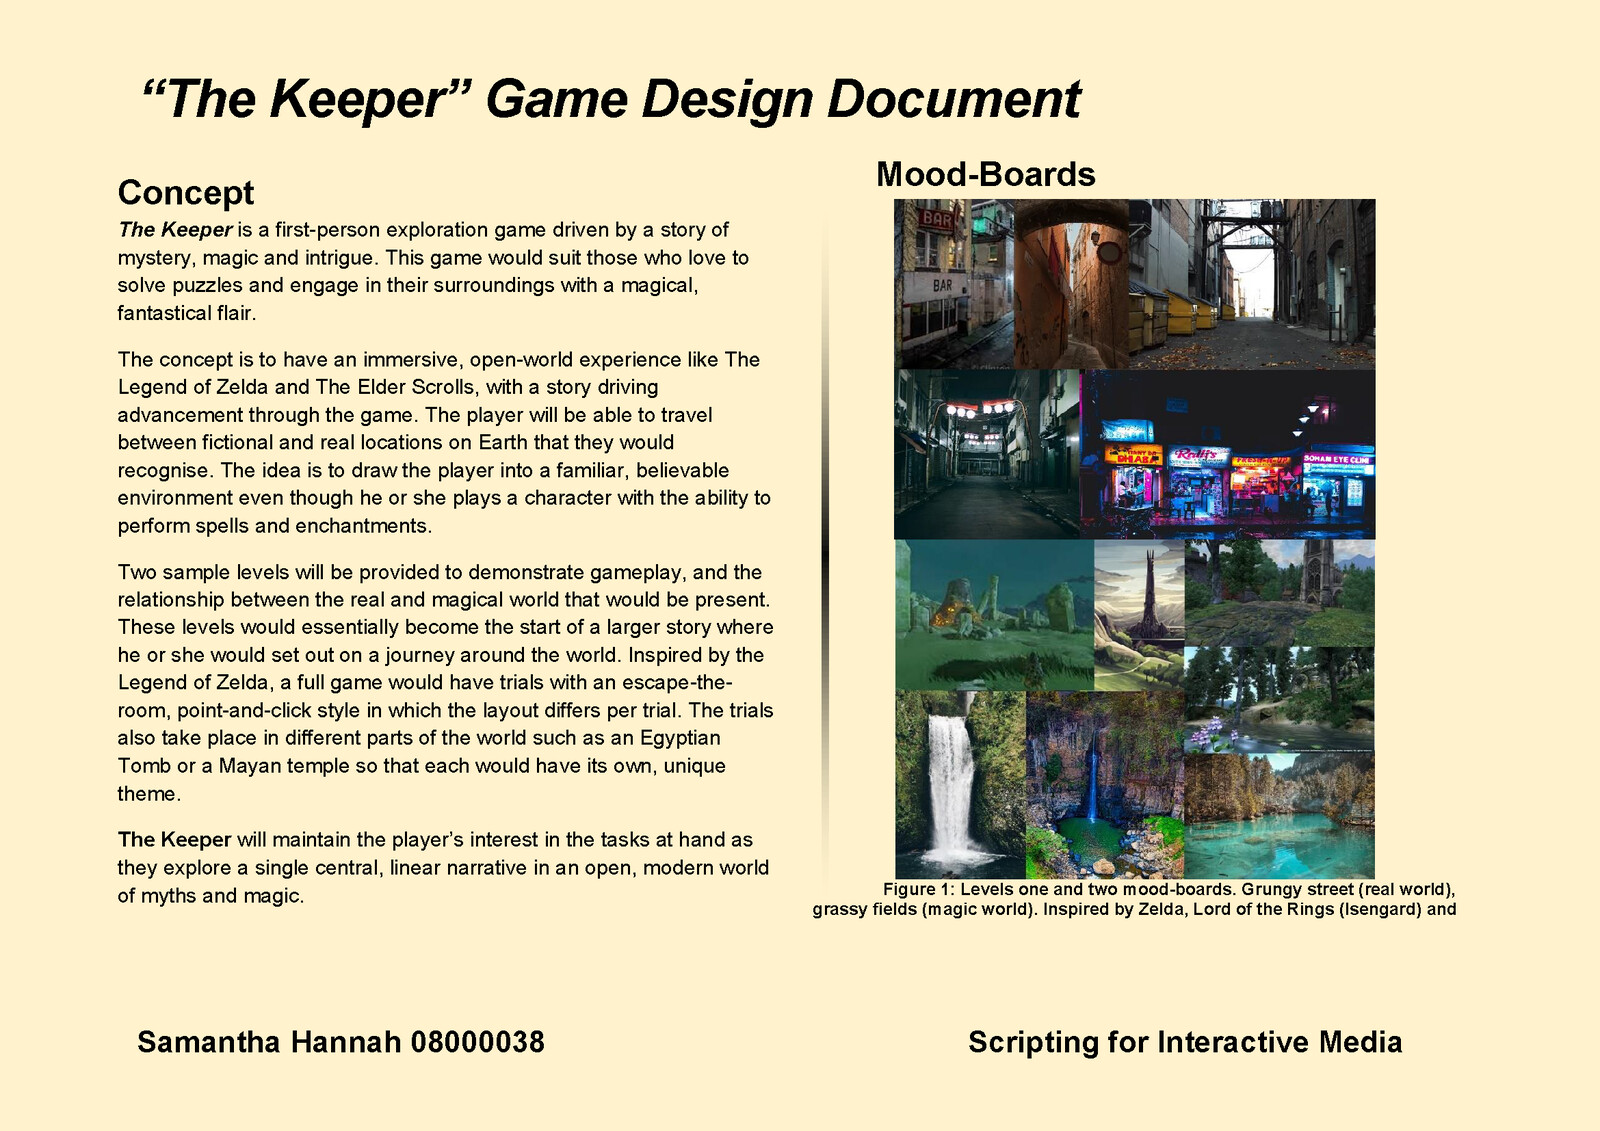 Game Design Document Page 2